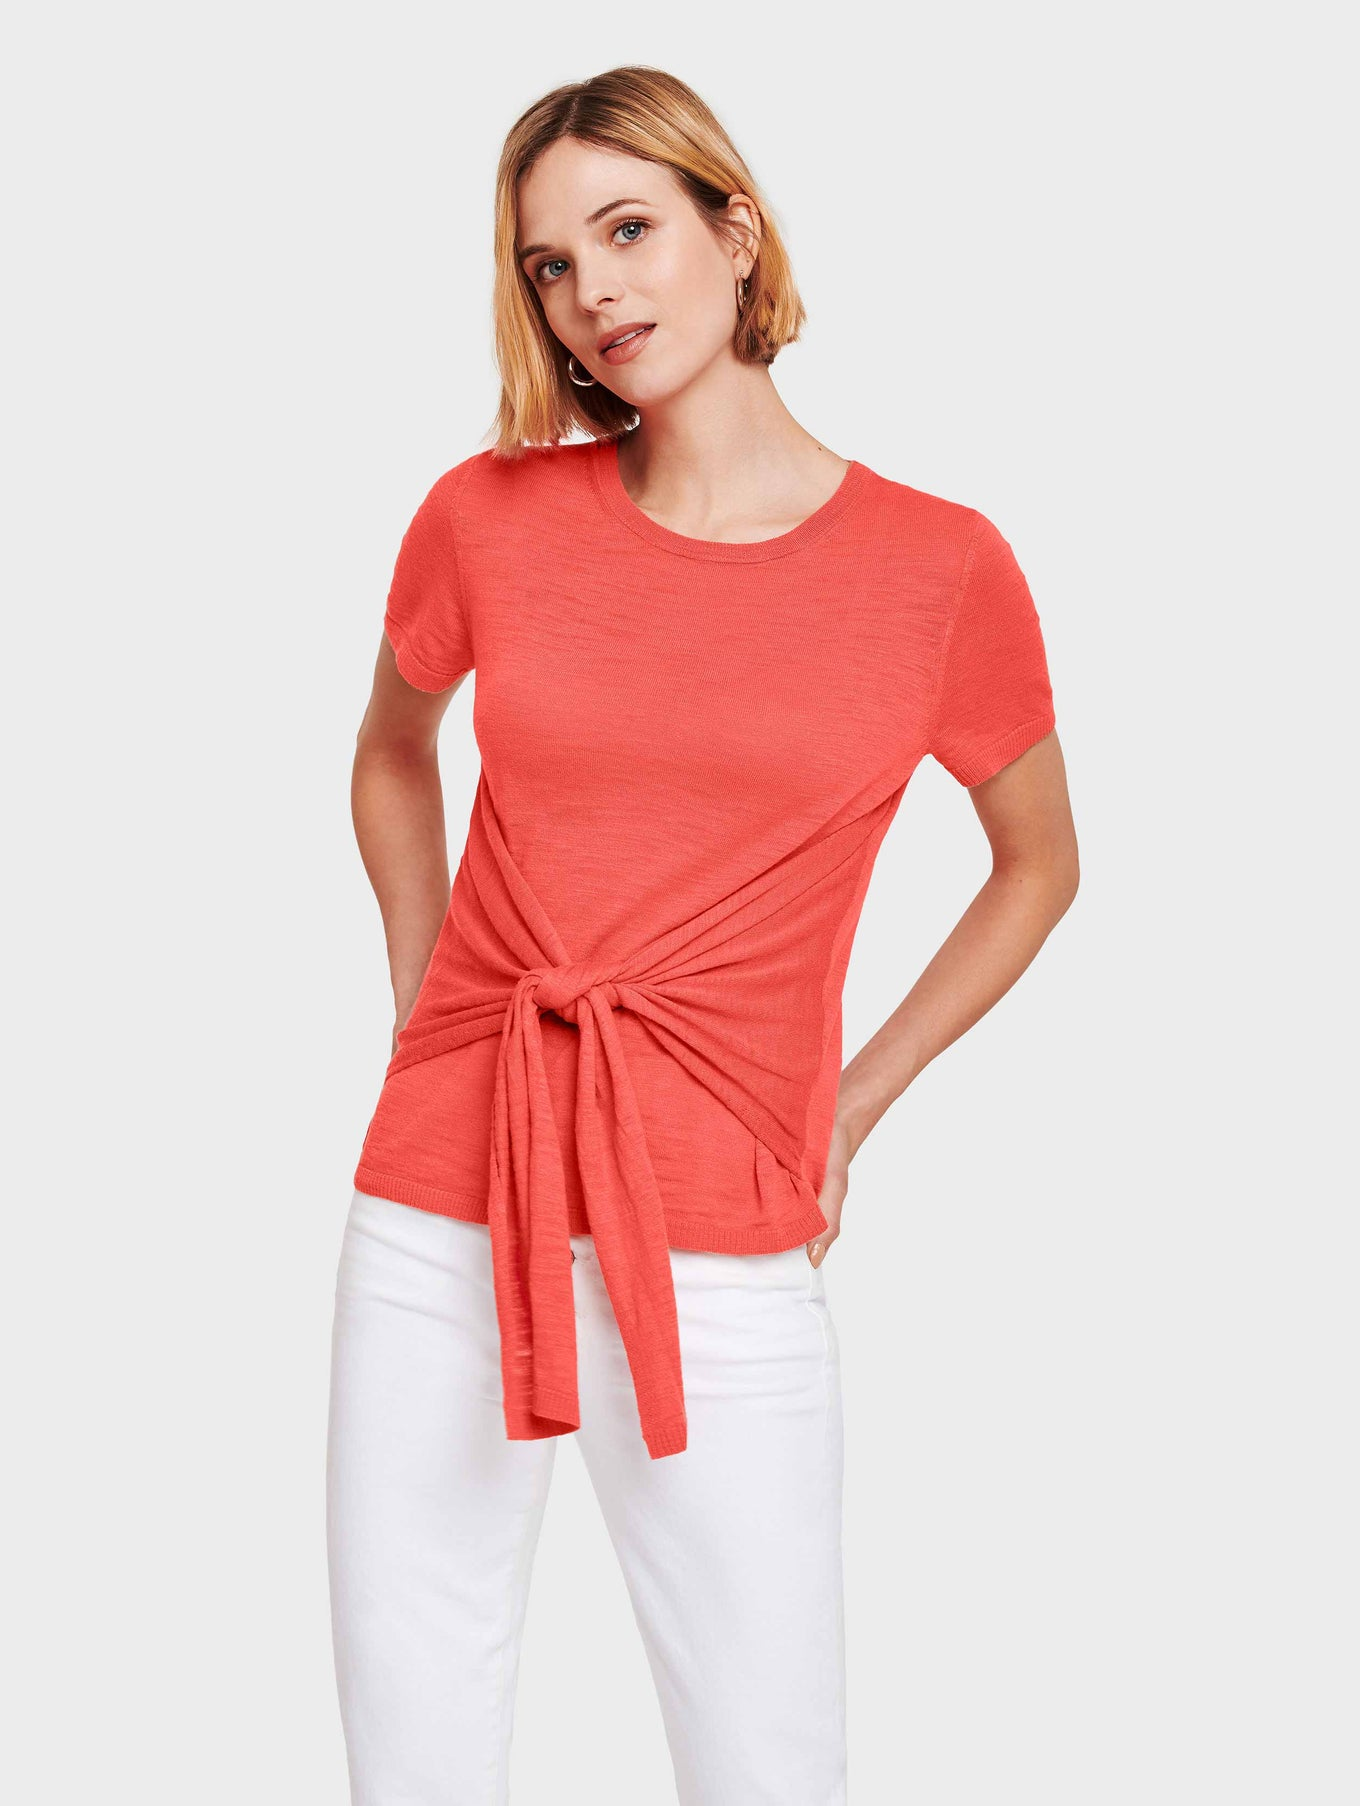 Cotton Slub Tie Front Tee - Rose - Image 2